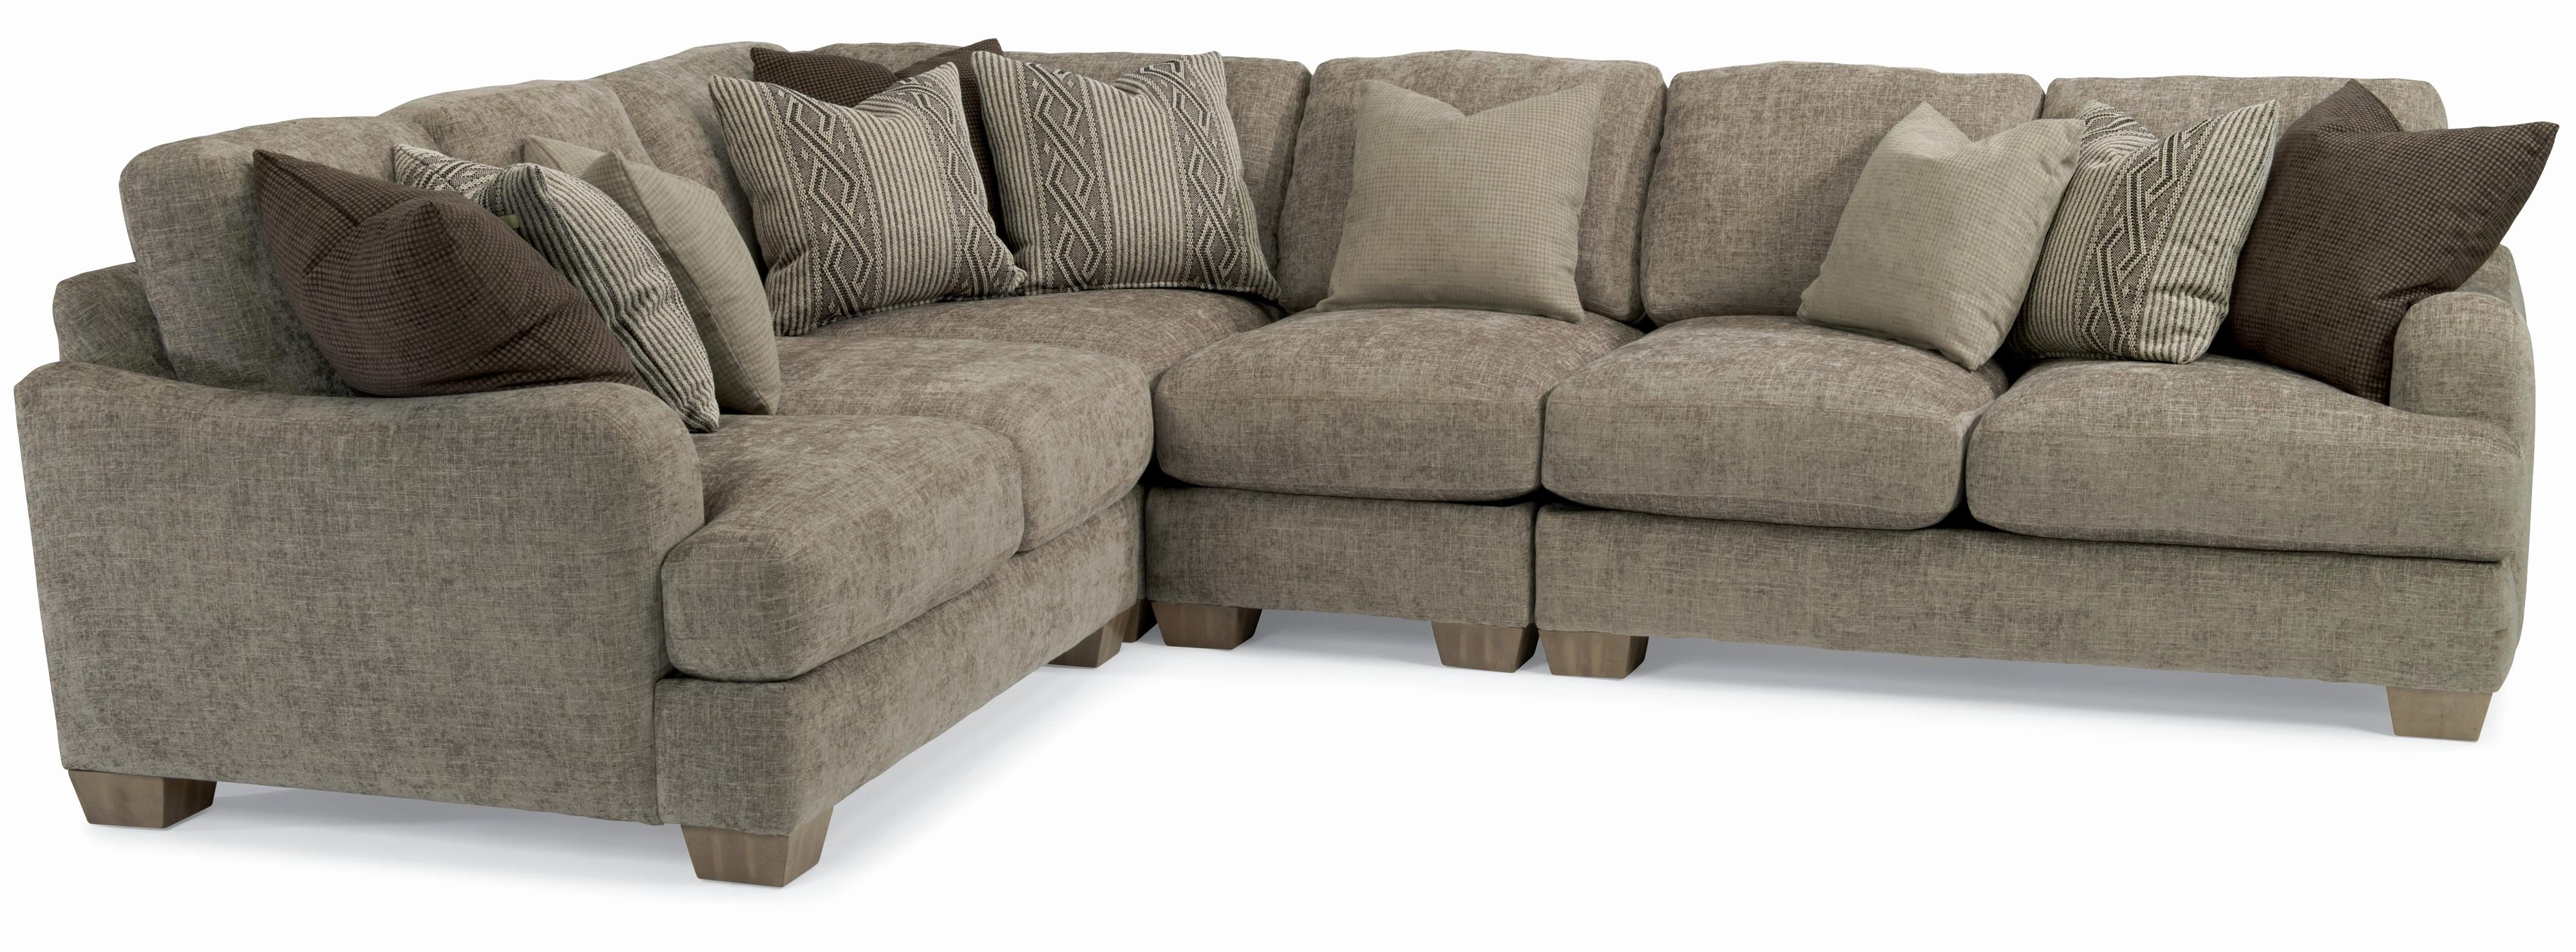 Inspirational Flexsteel Sectional Sofa Pics Flexsteel Sectional Sofa New Vanessa Sectional Sofa Wit Sectional Sofa Cheap Living Room Sets Living Room Furniture